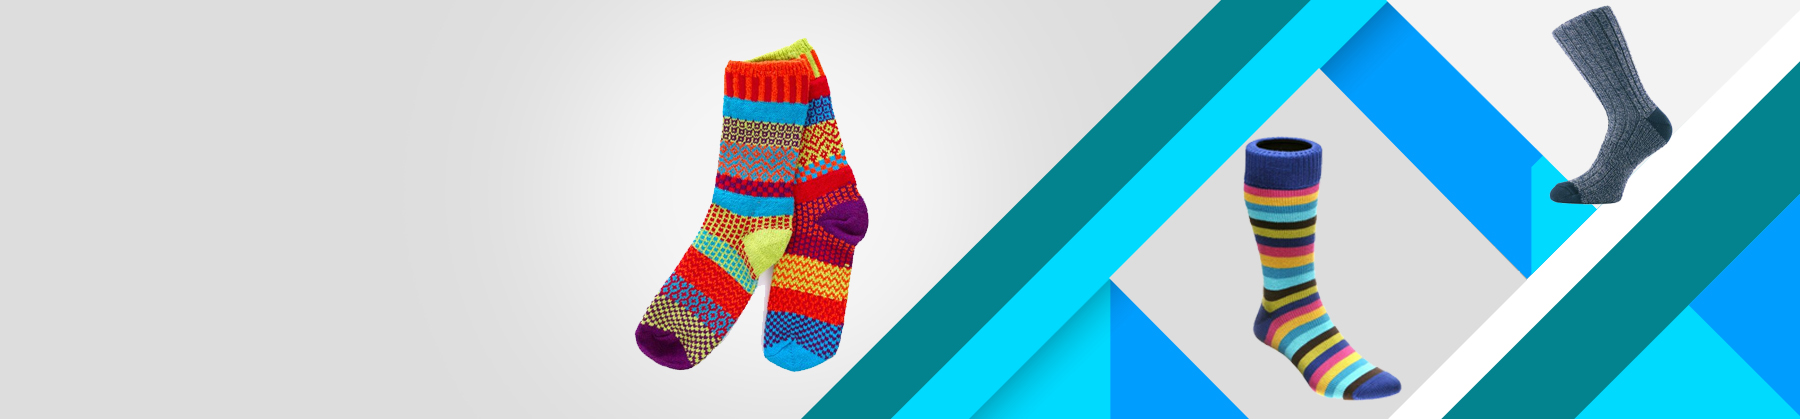 Cheap Wholesale Socks Manufacturers Amp Distributors In Usa